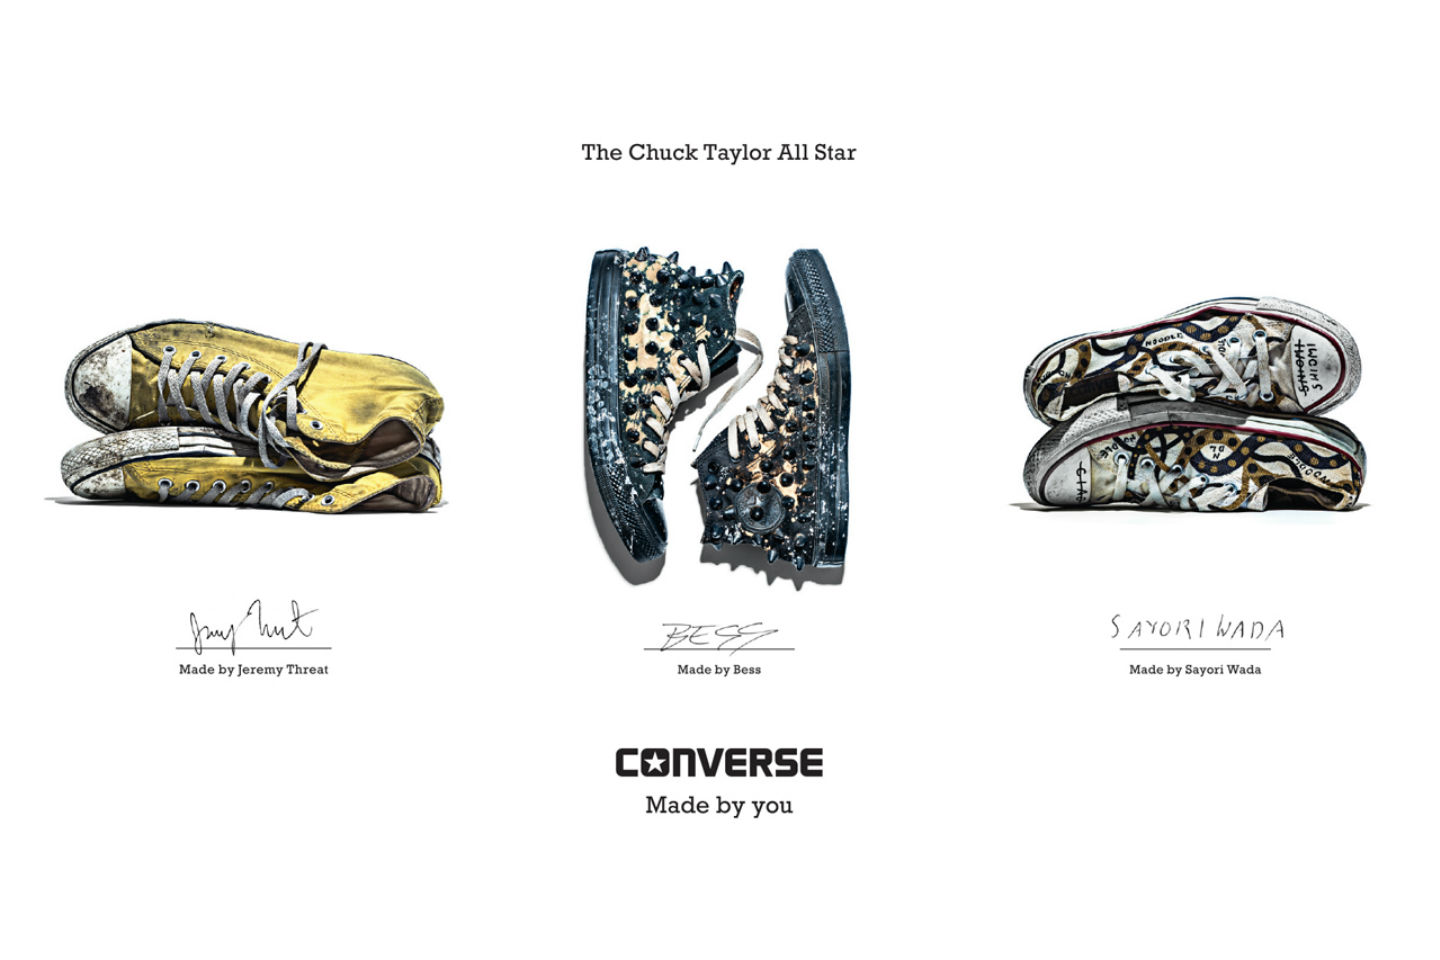 converse-launces-the-made-by-you-campaign-featuring-warhol-futura-ron-english-and-more-1.jpg